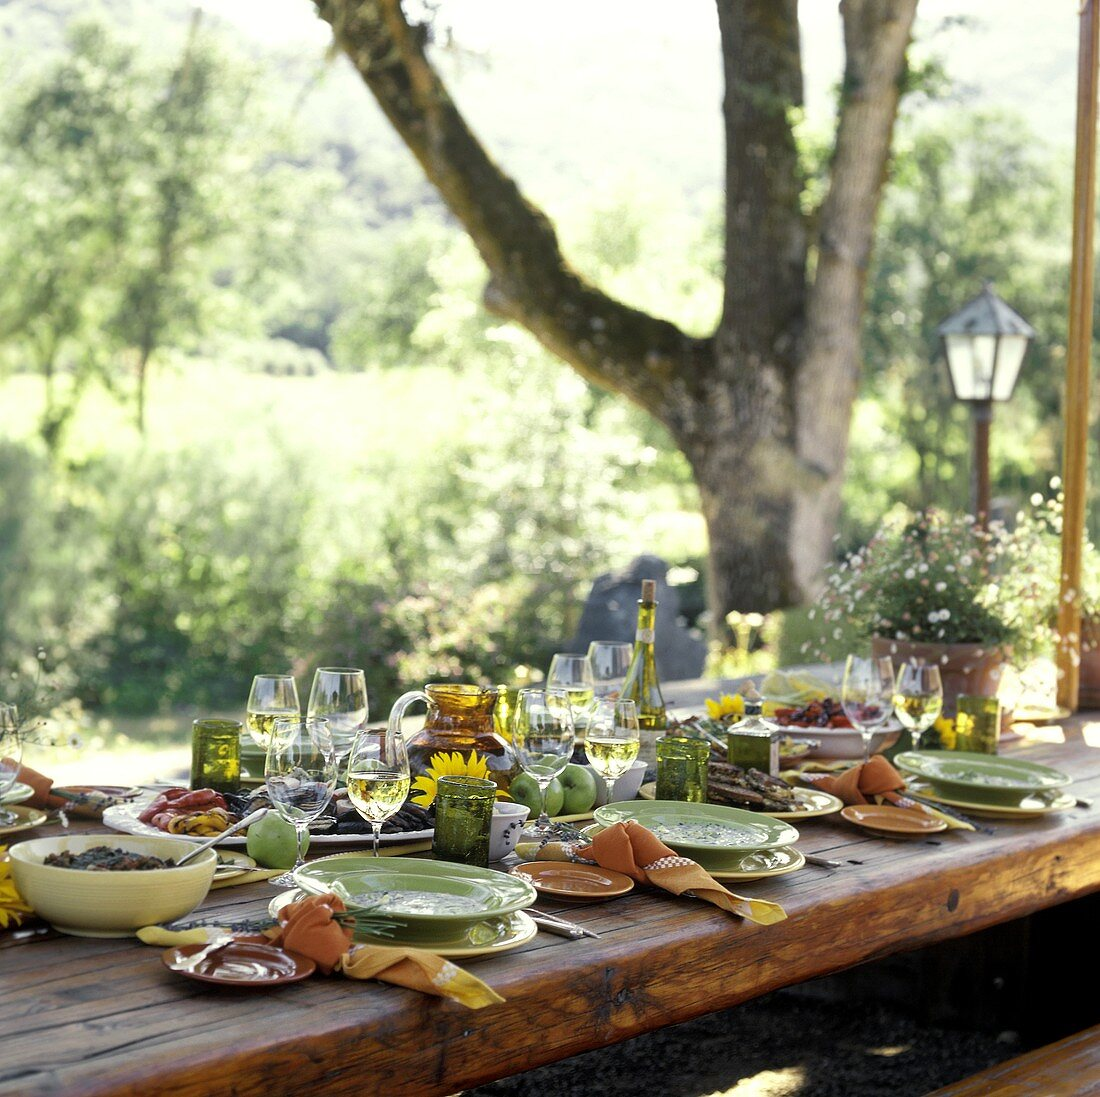 An Outdoor Table Setting with a Vegetarian Meal